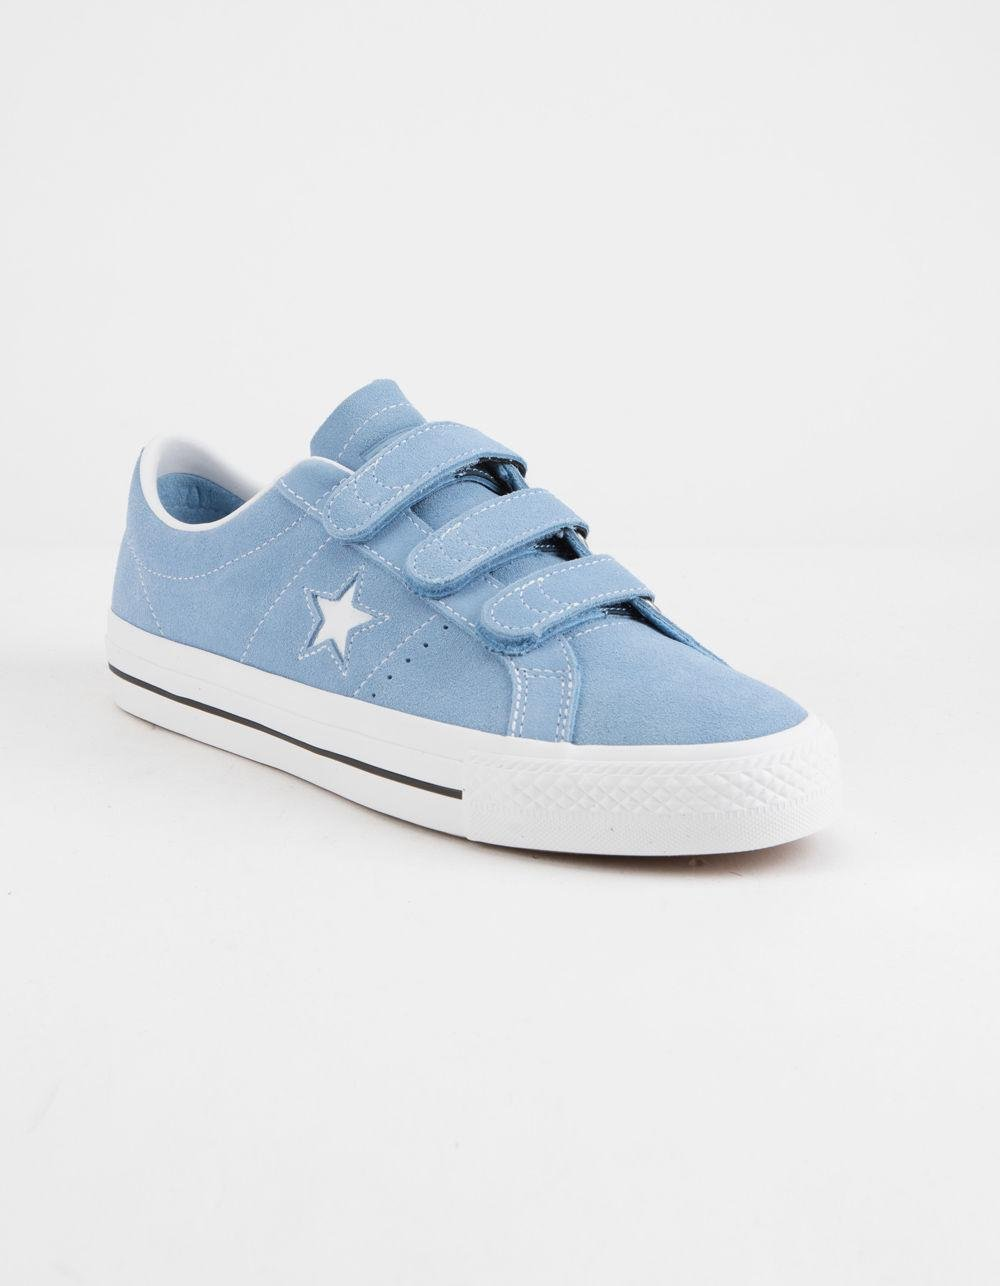 95e2ba552268 Lyst - Converse One Star Pro 3v Ox Light Blue   White Shoes in Blue for Men